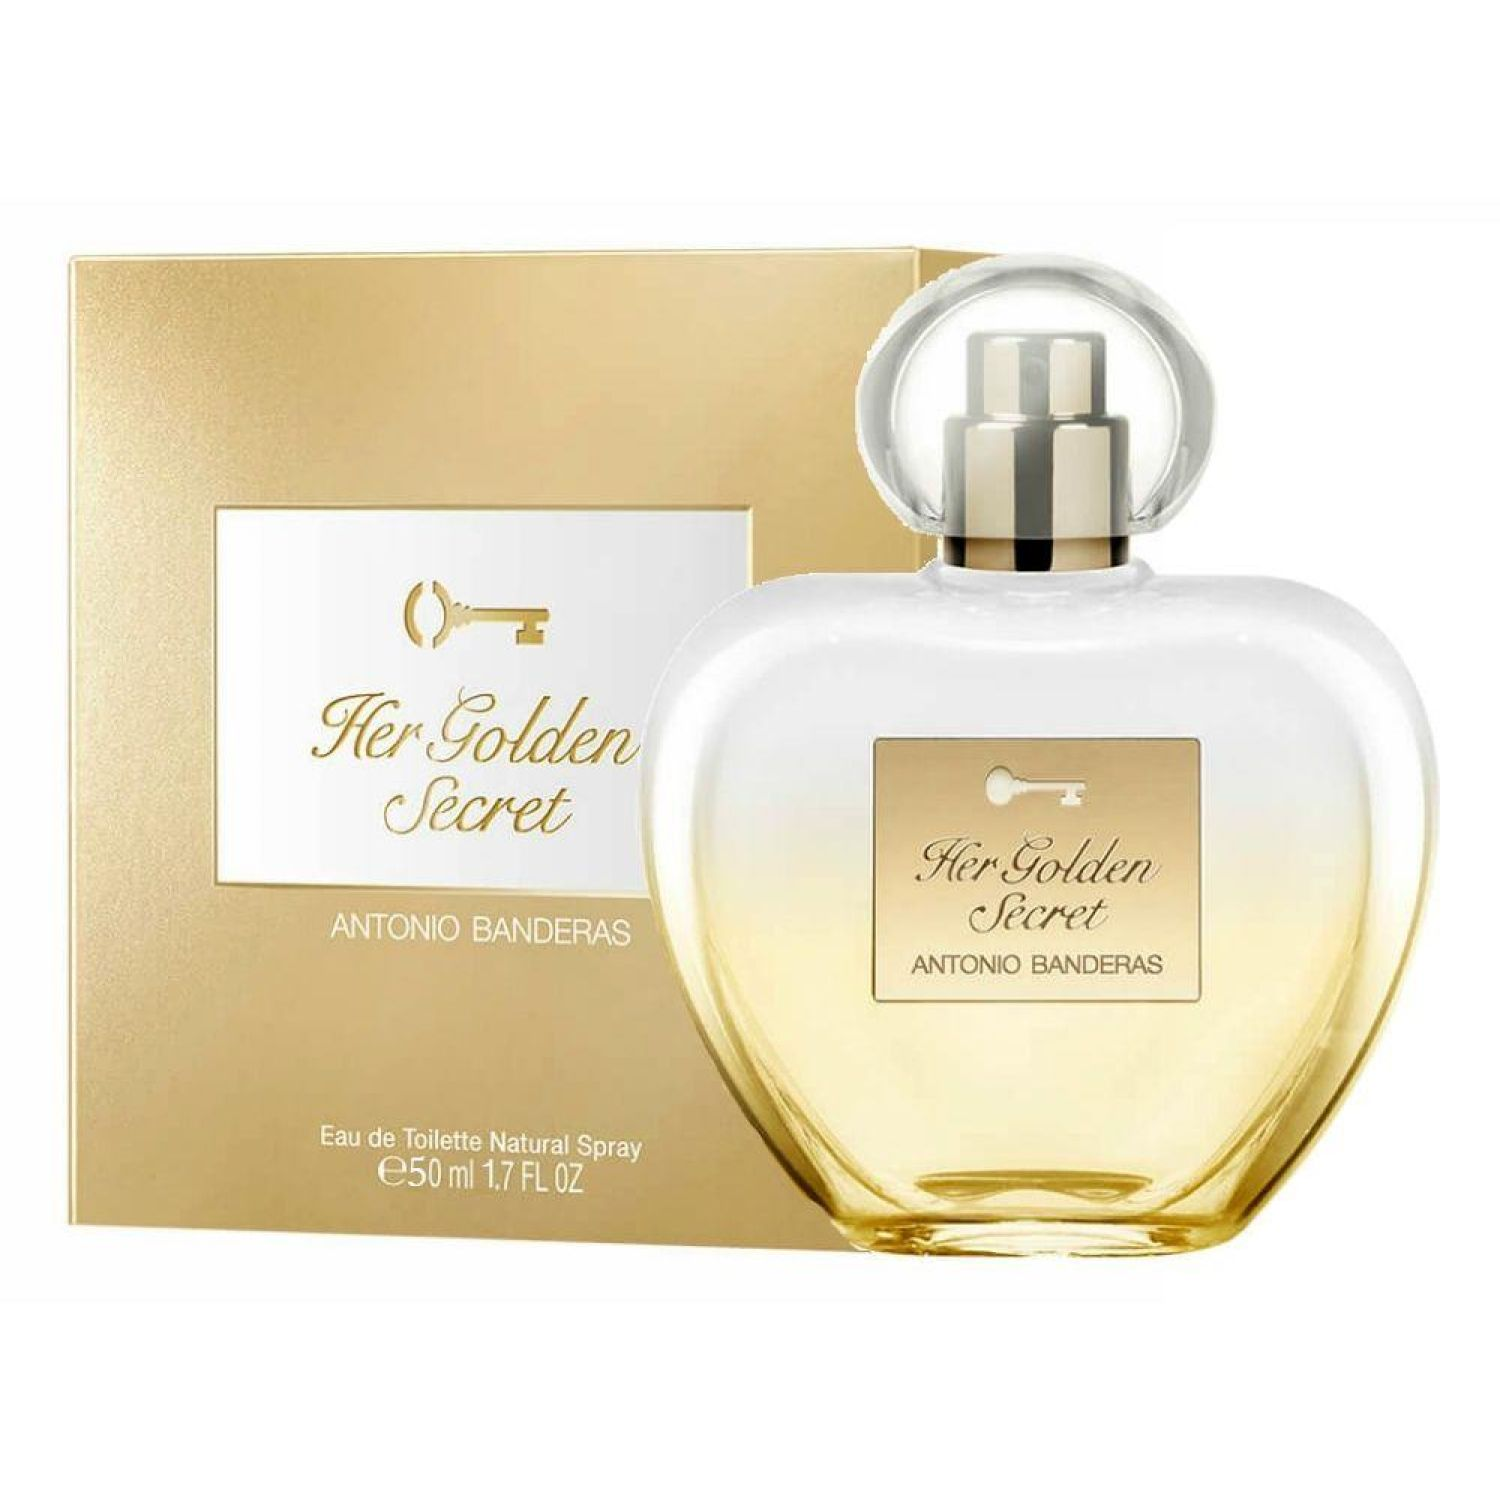 ANTONIO BANDERAS Ab Her Golden Secret  New Edt 50ml Vp Varios Colonia